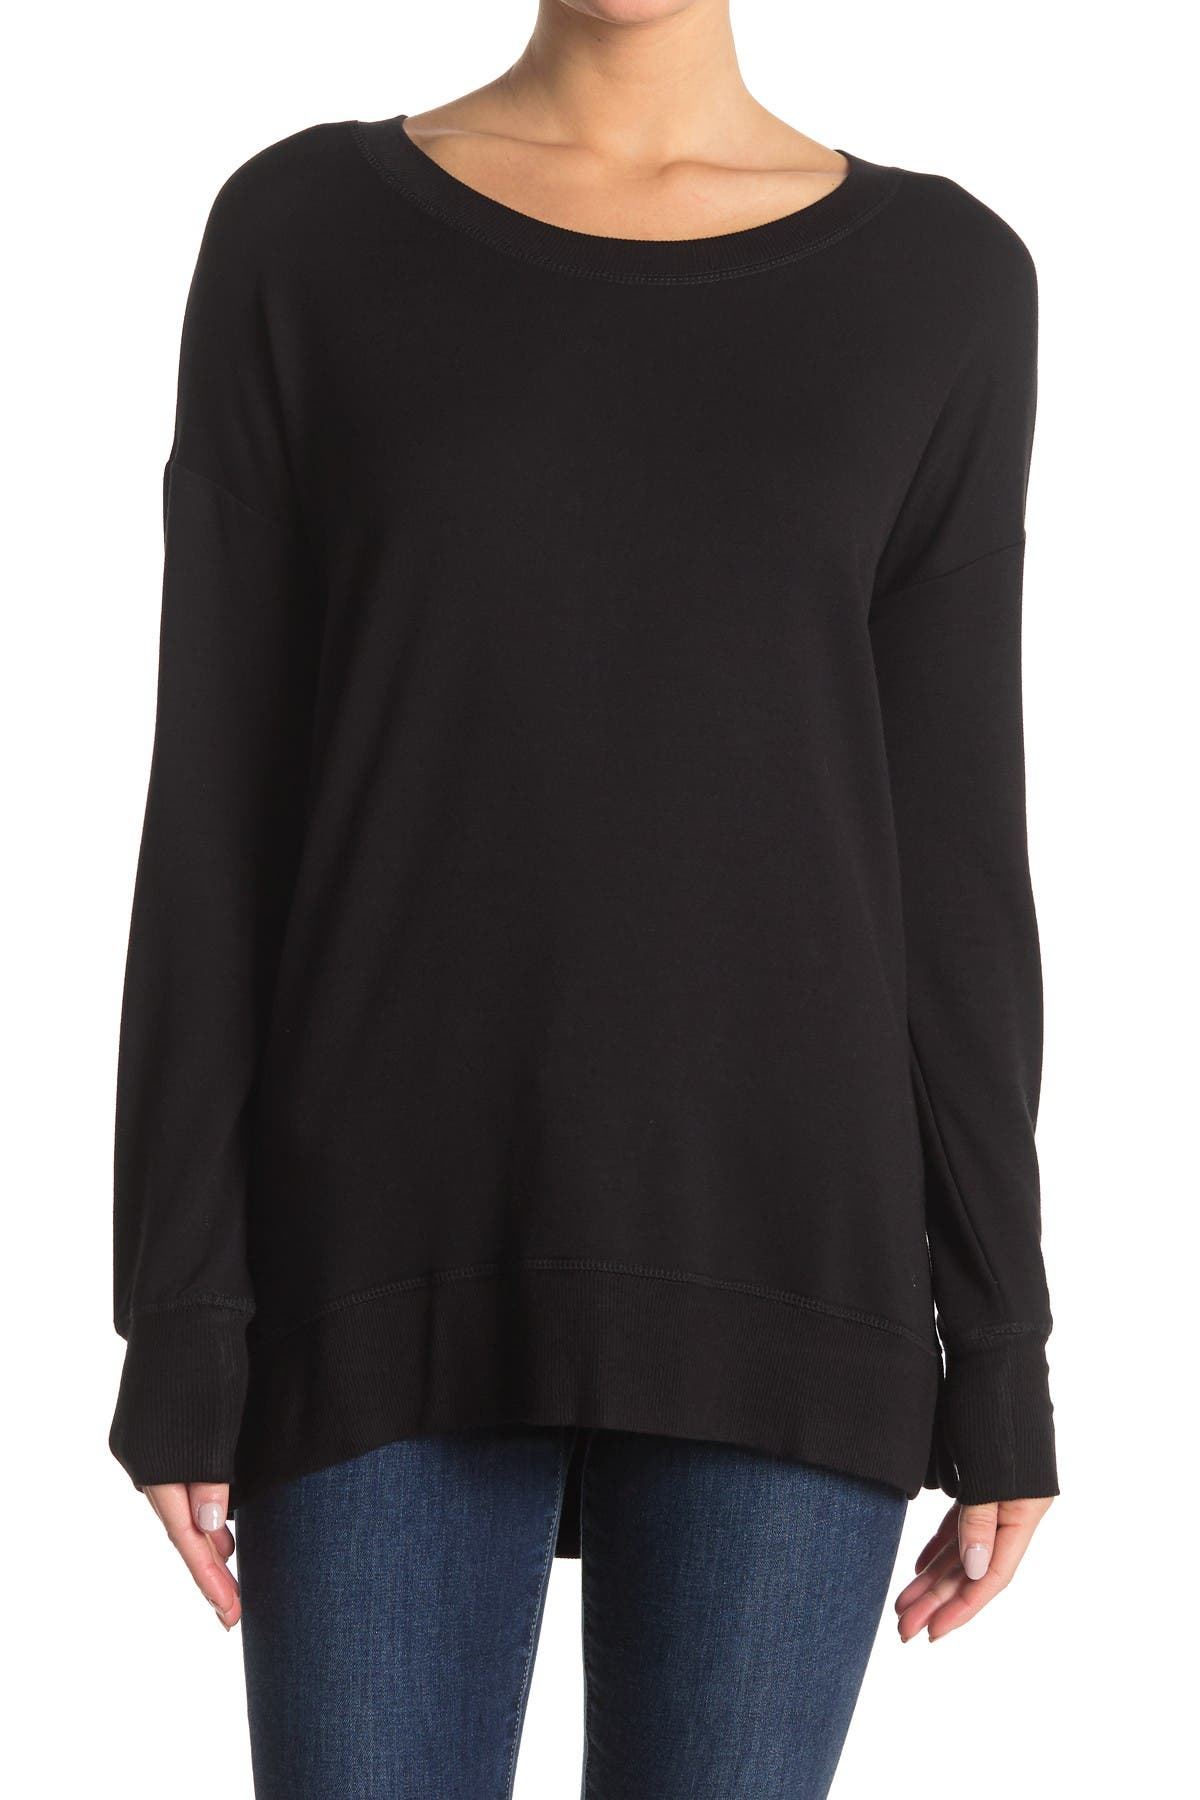 Image of Workshop Crew Neck Drop Shoulder Sleeve Sweatshirt